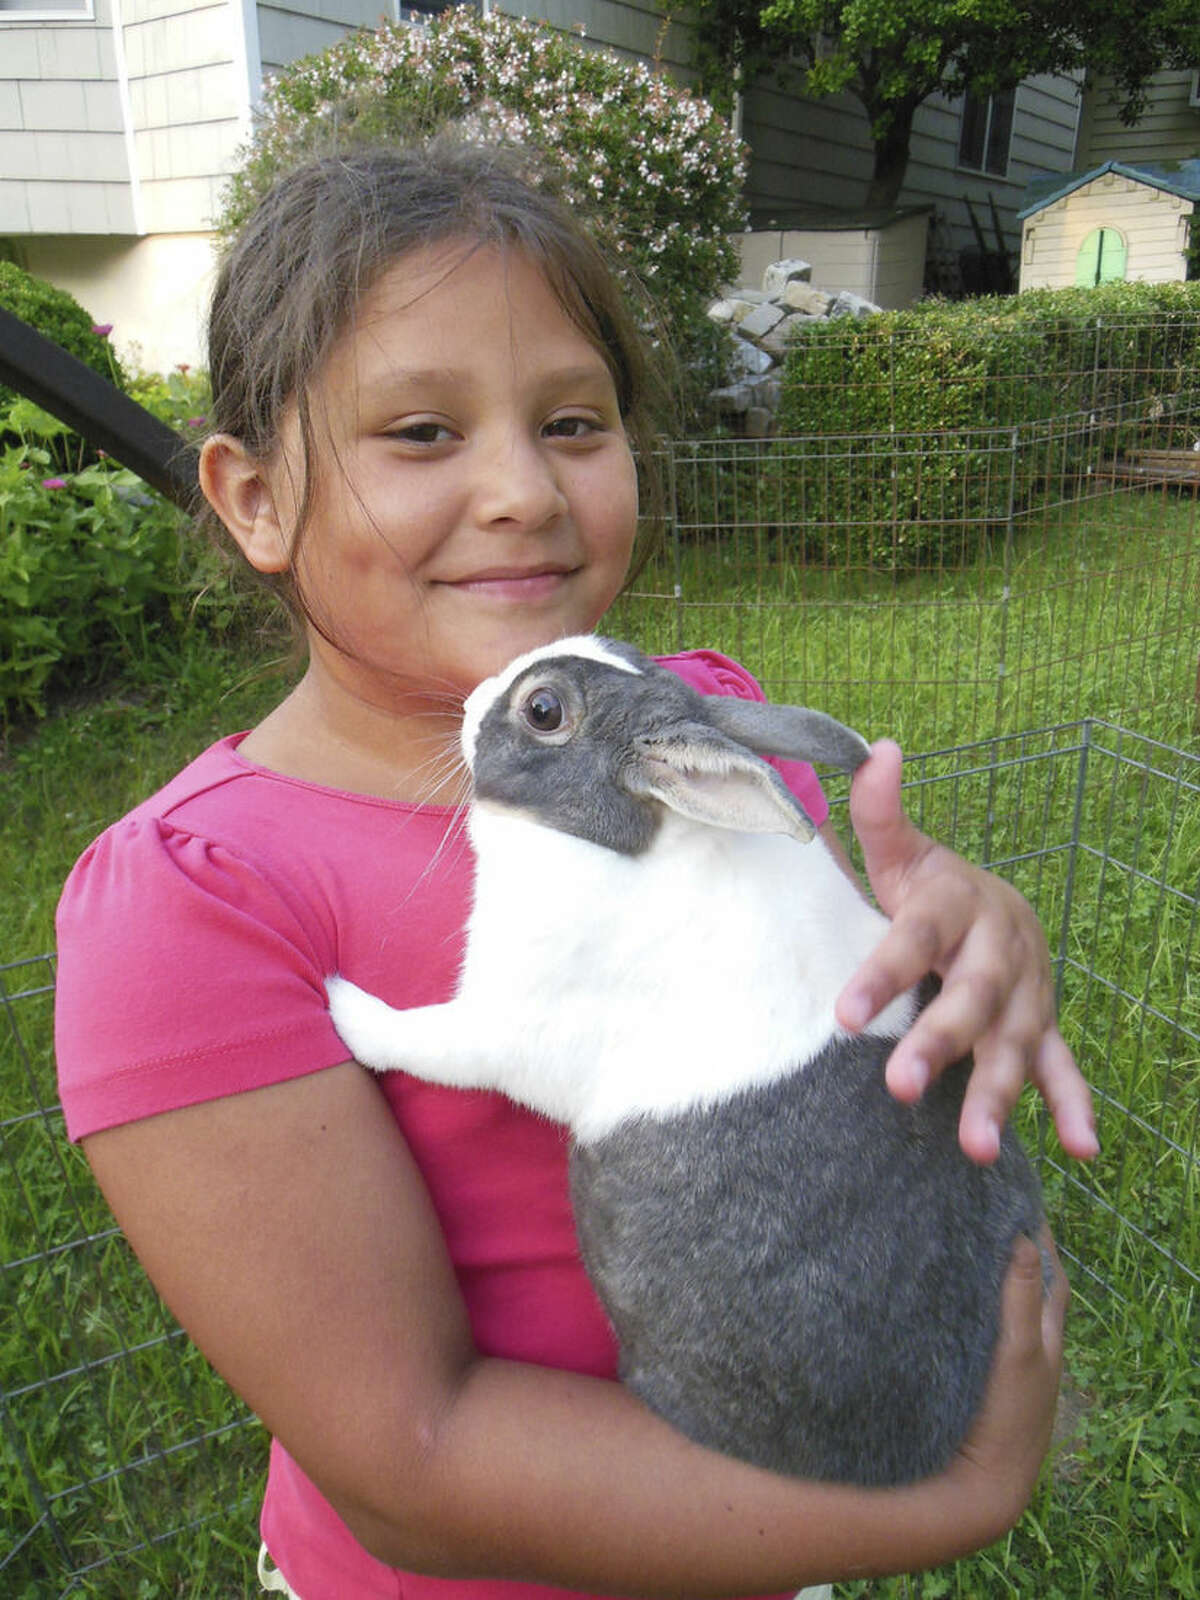 Contributed photo Nataly, of Manhattan, enjoyed an afternoon playing with a bunny in a neighbors backyard while visiting her Fresh Air host family. Nataly spent two weeks with Margaret Pappas and Charles Stuttig, of Greenwich, this past July as part of The Fresh Air Fund's Volunteer Host Family Program.